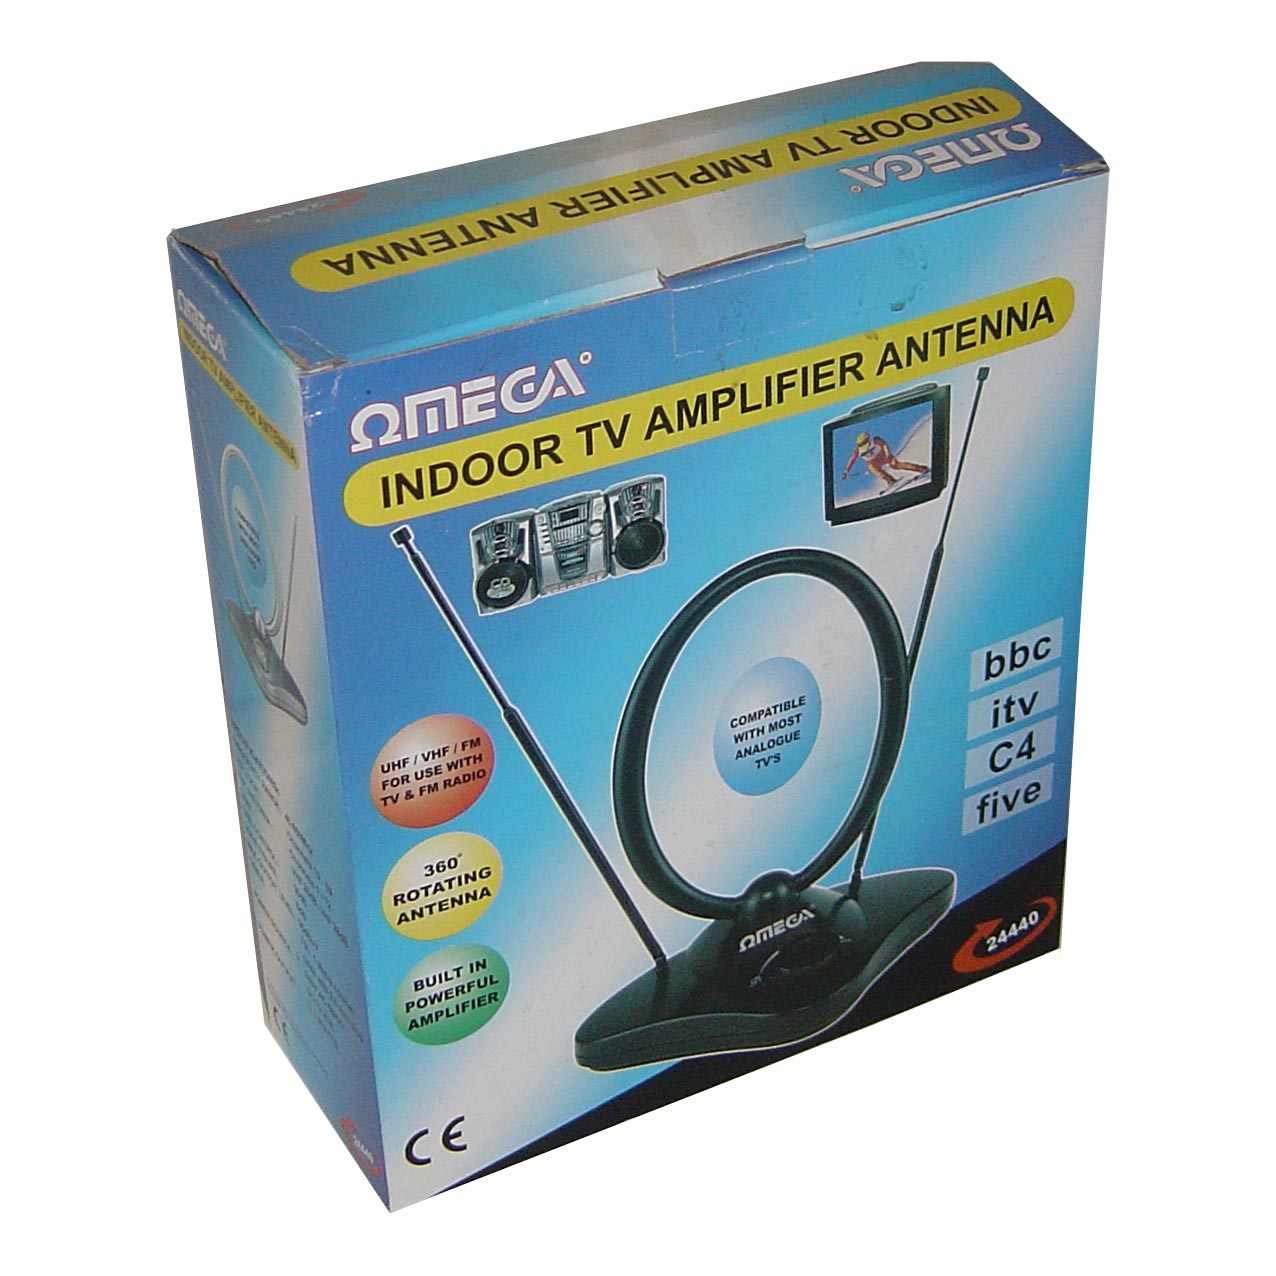 Indoor TV Amplifier antenna ideal for UHF/VHF/FM for use with TV